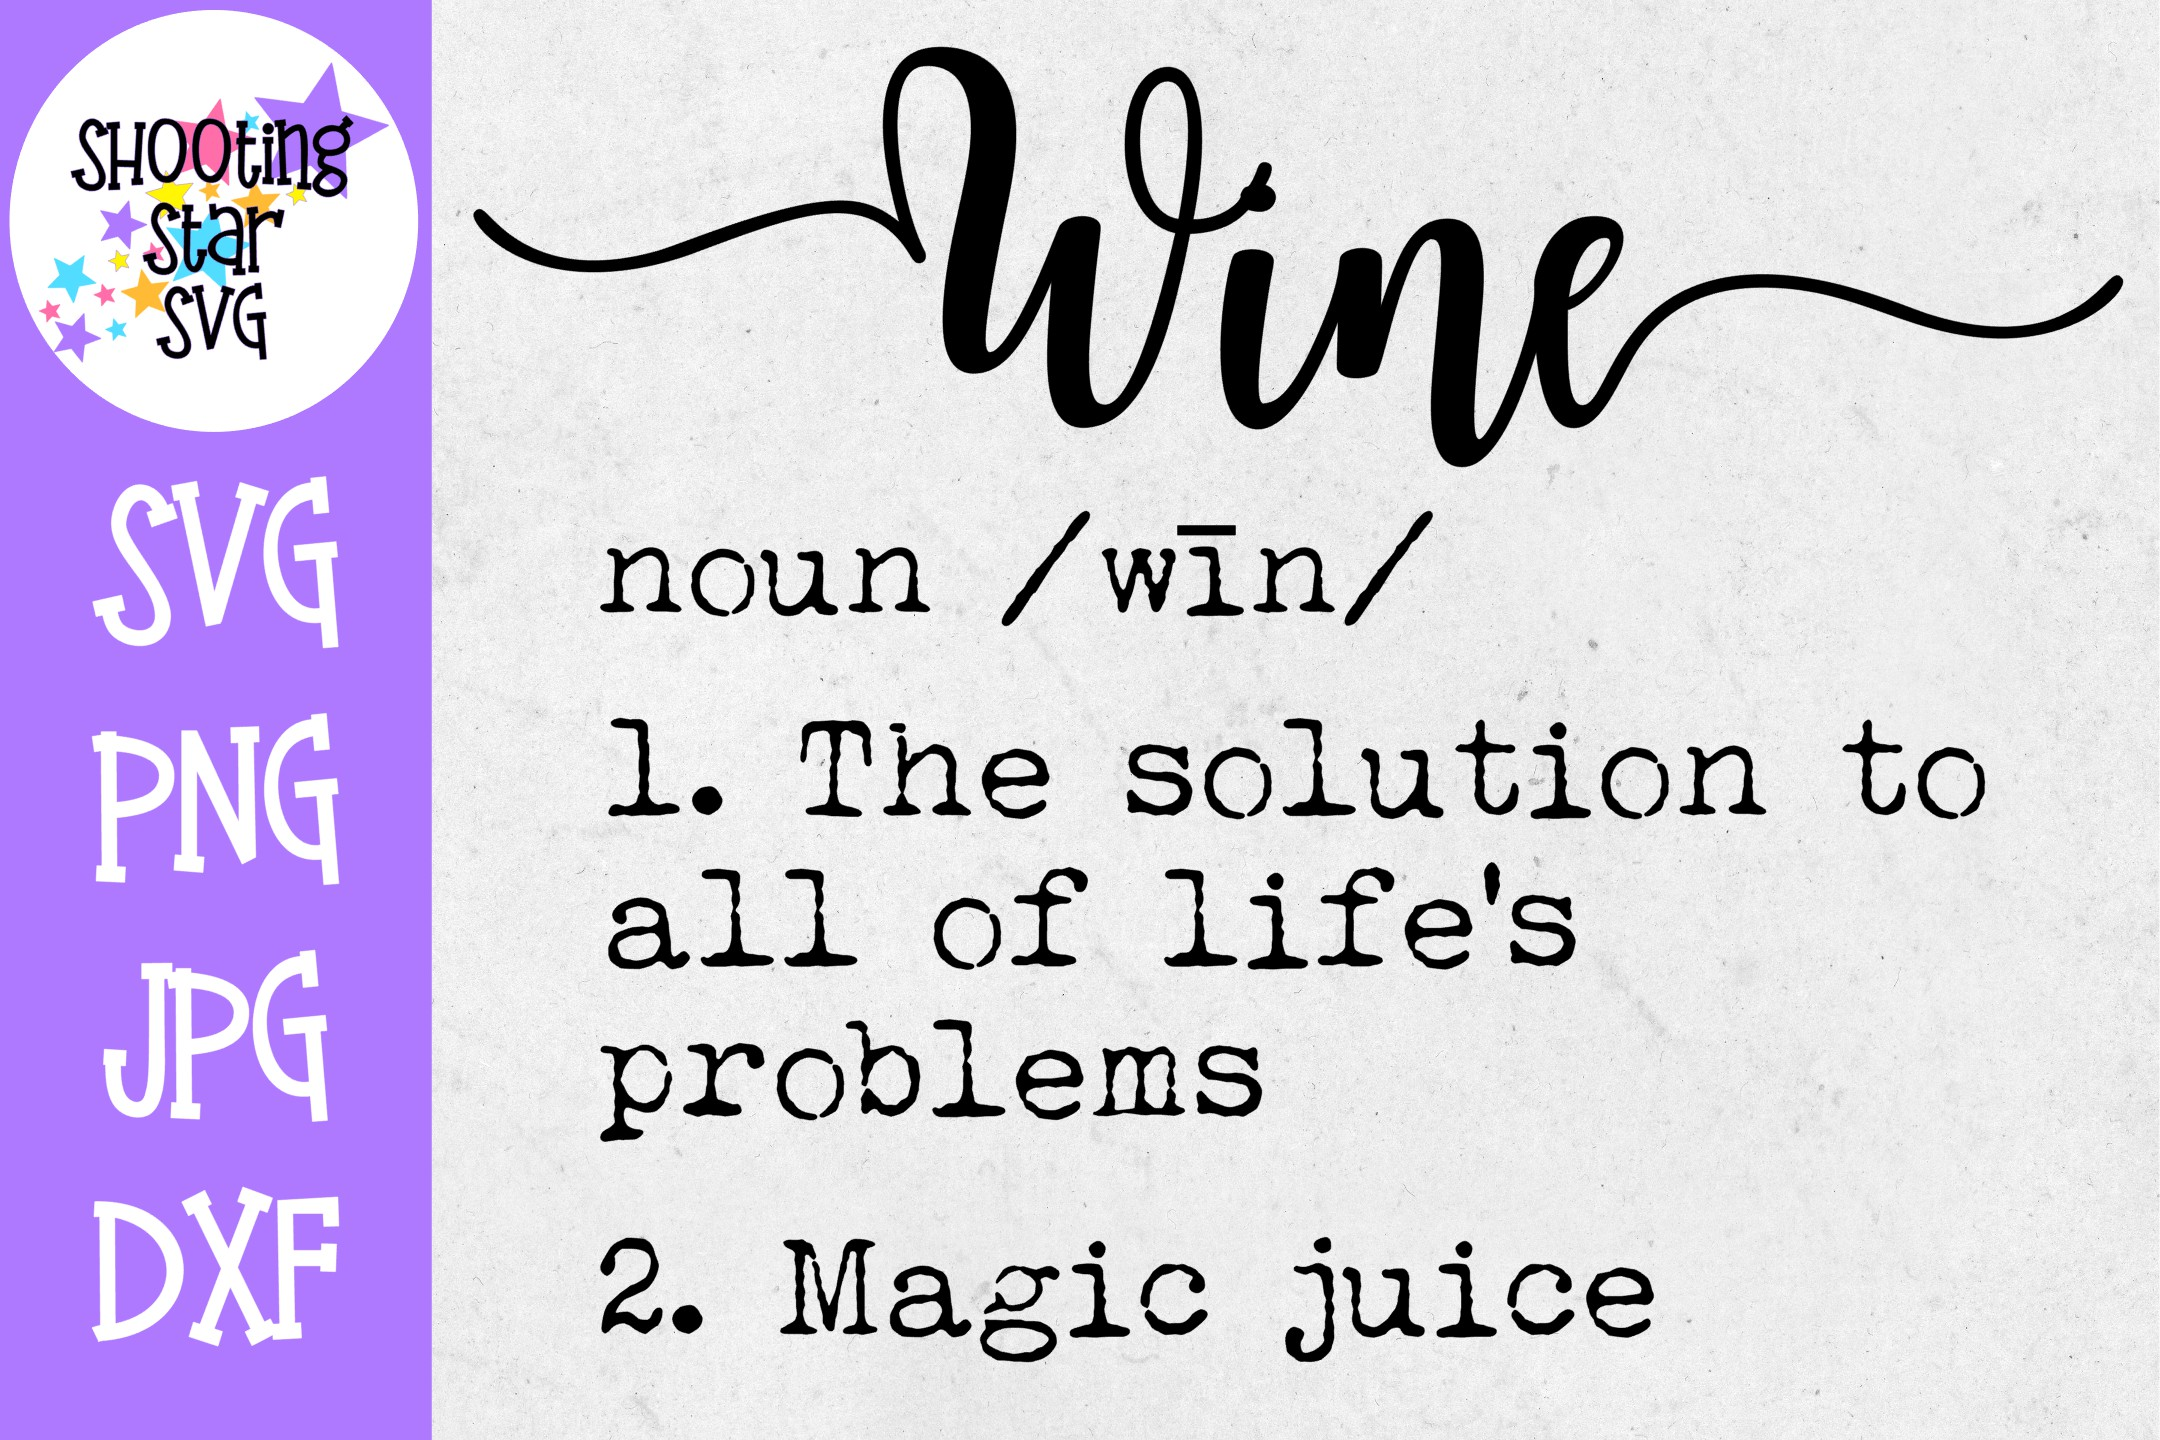 Wine Definition SVG - Funny Wine Definition - Wine Lover SVG example image 1